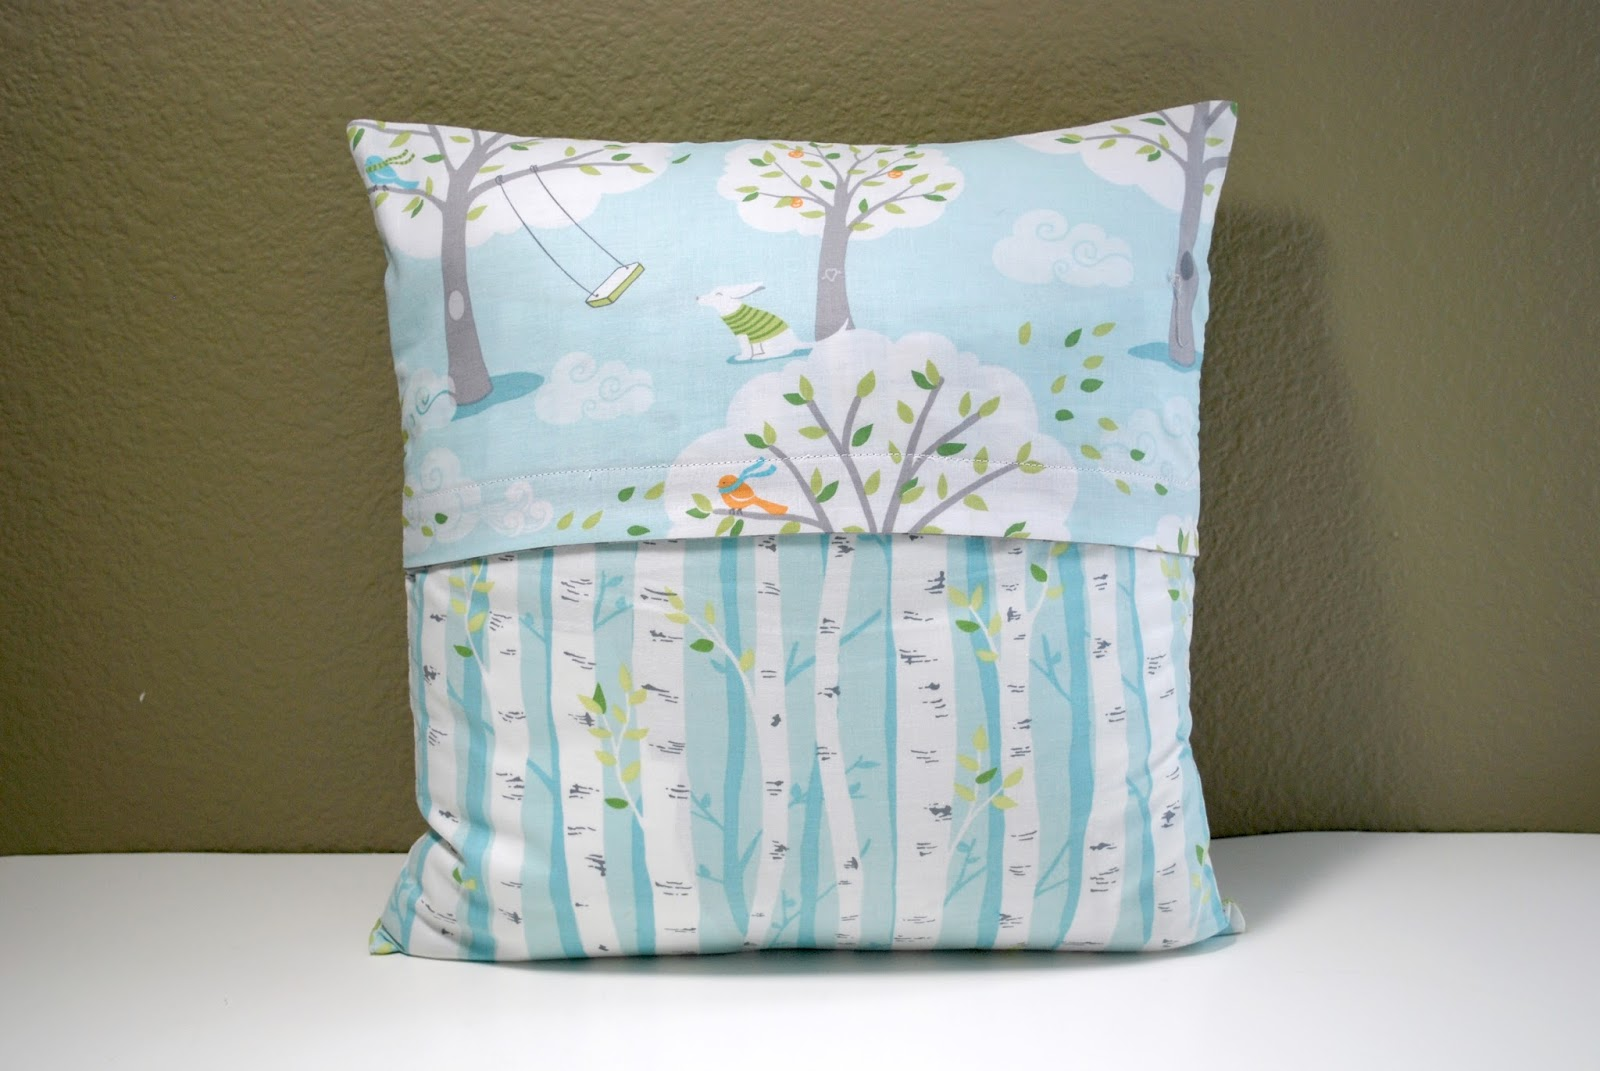 envelope cushion cover yahoo answers. Black Bedroom Furniture Sets. Home Design Ideas